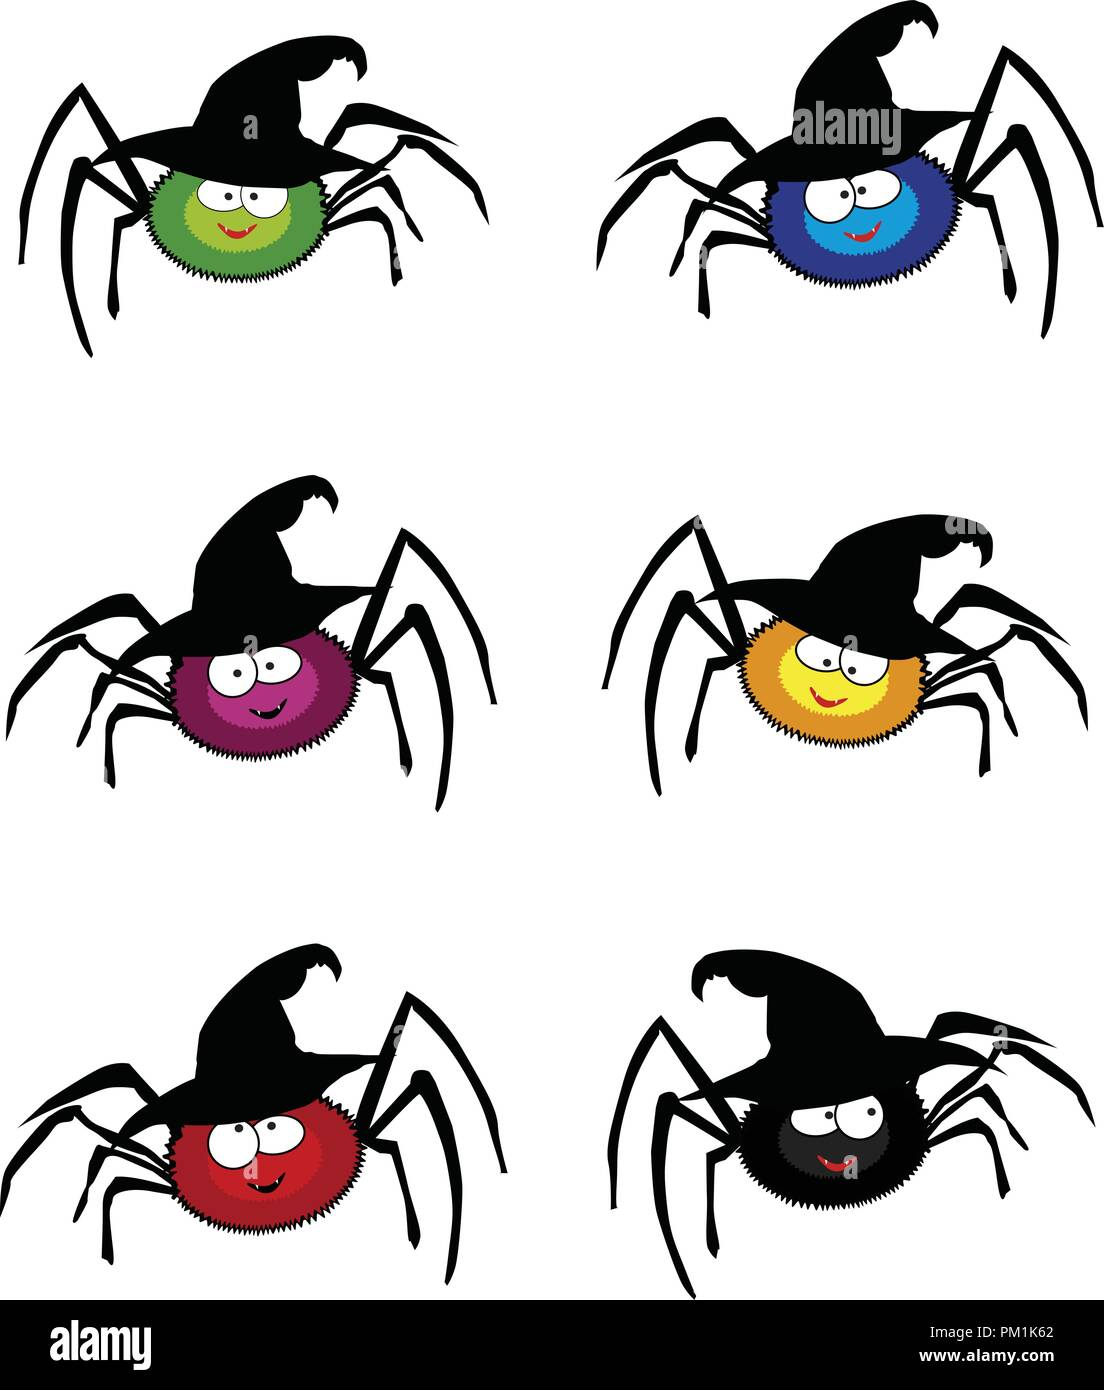 Cartoon Spider Cut Out Stock Images & Pictures - Alamy